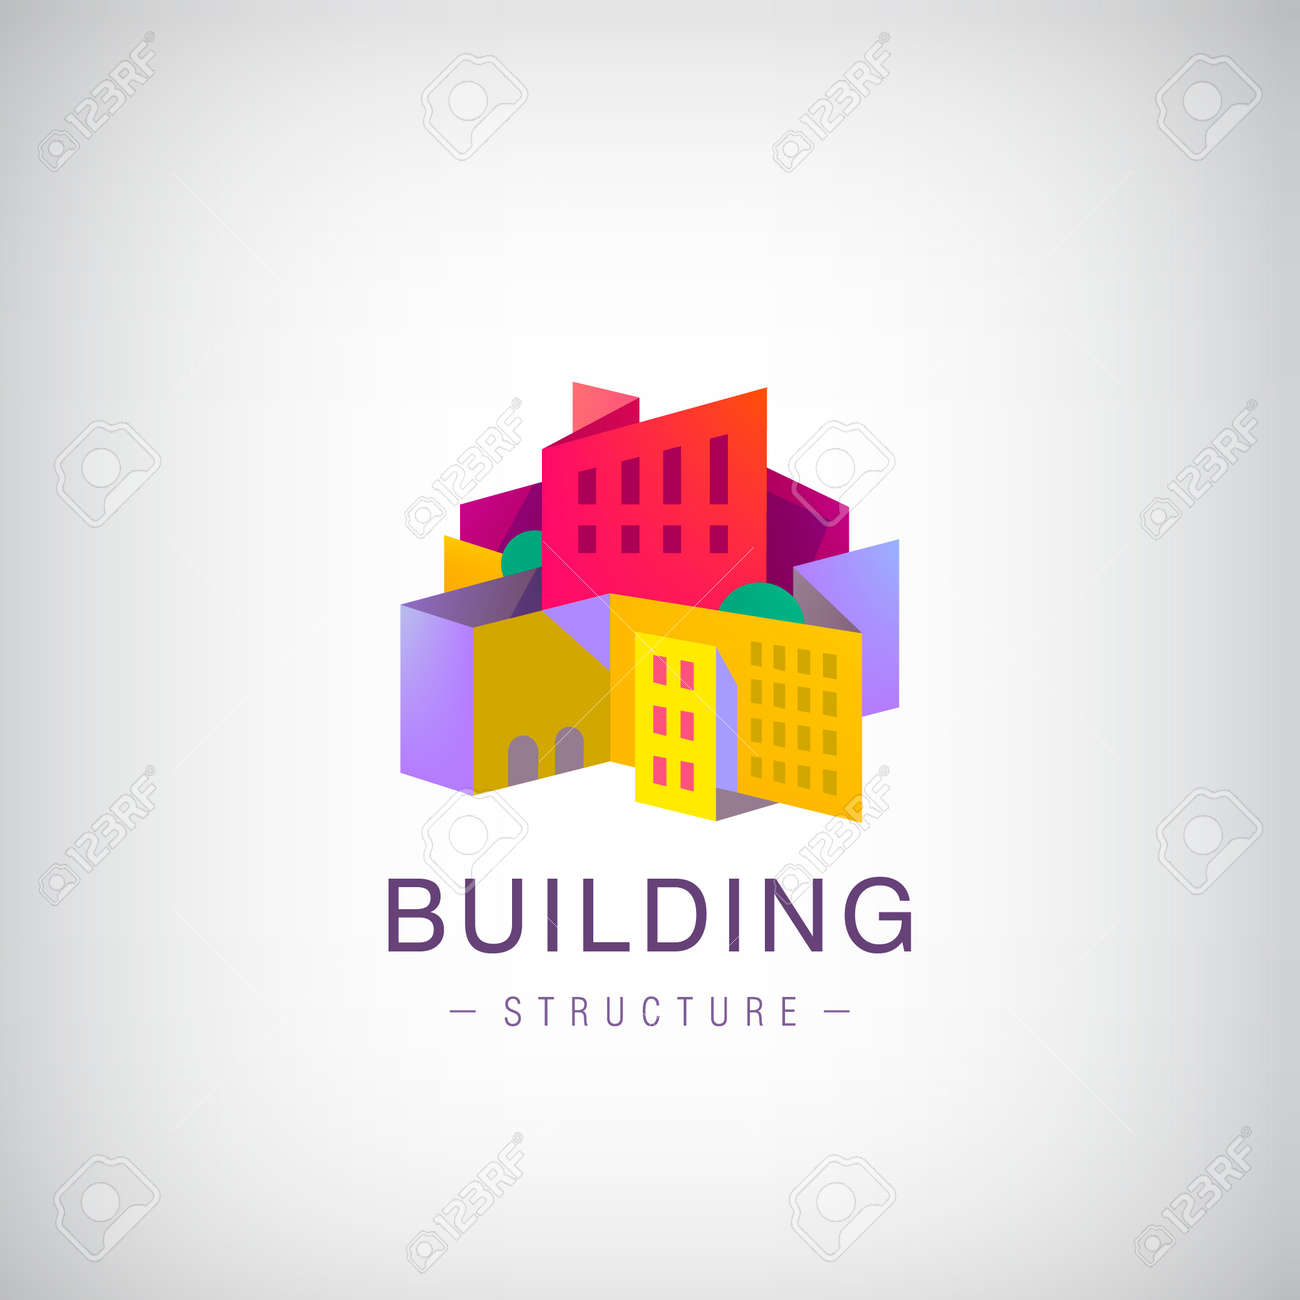 Vector origami building structure, city scape construction, colorful 3d logo, icon. Real estate, houses - 157409760